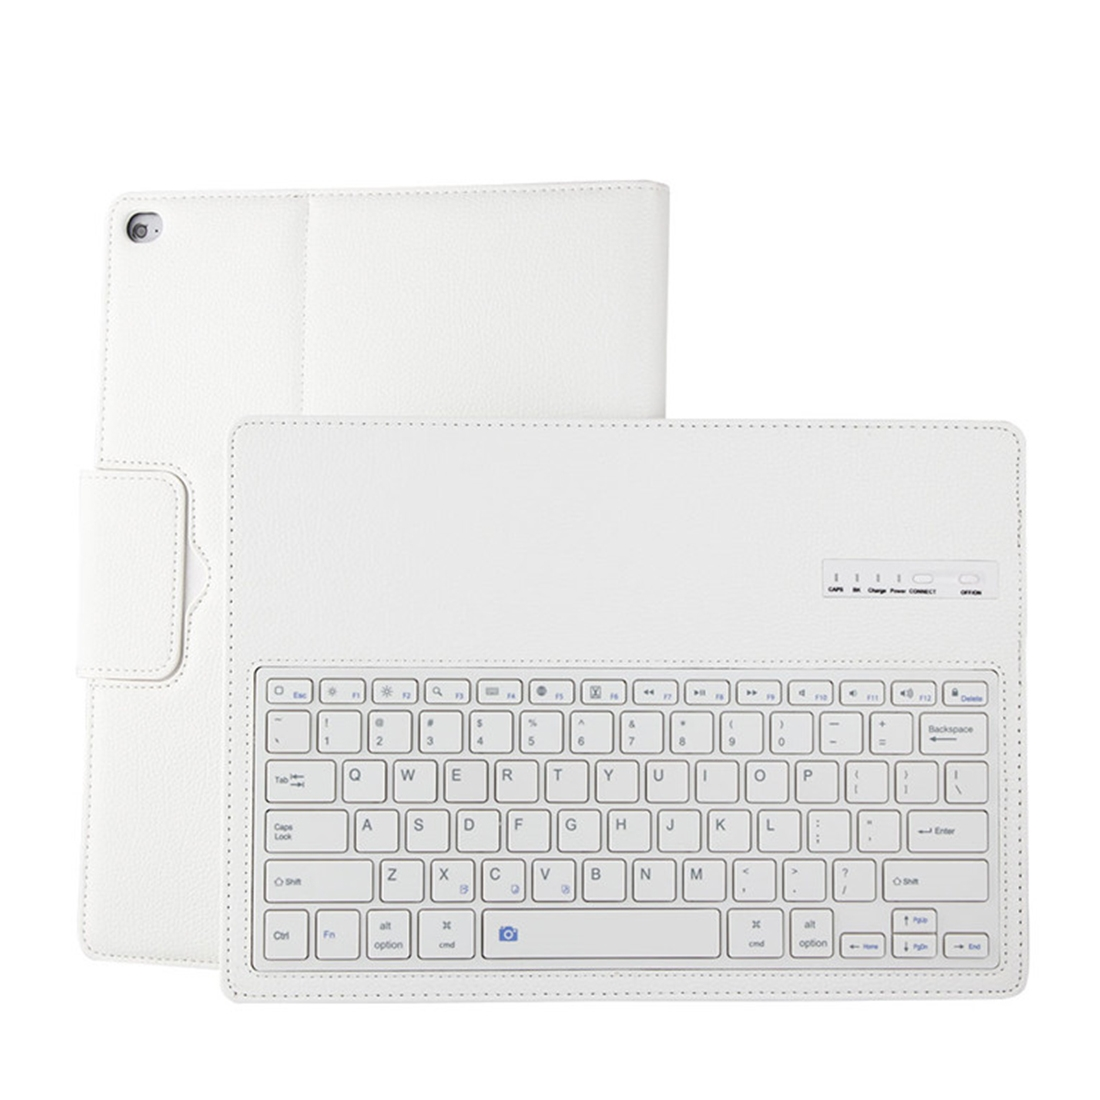 iPad Pro 12.9 Case With Keyboard (2015-17) With Leather Case & Detachable Keyboard (White)